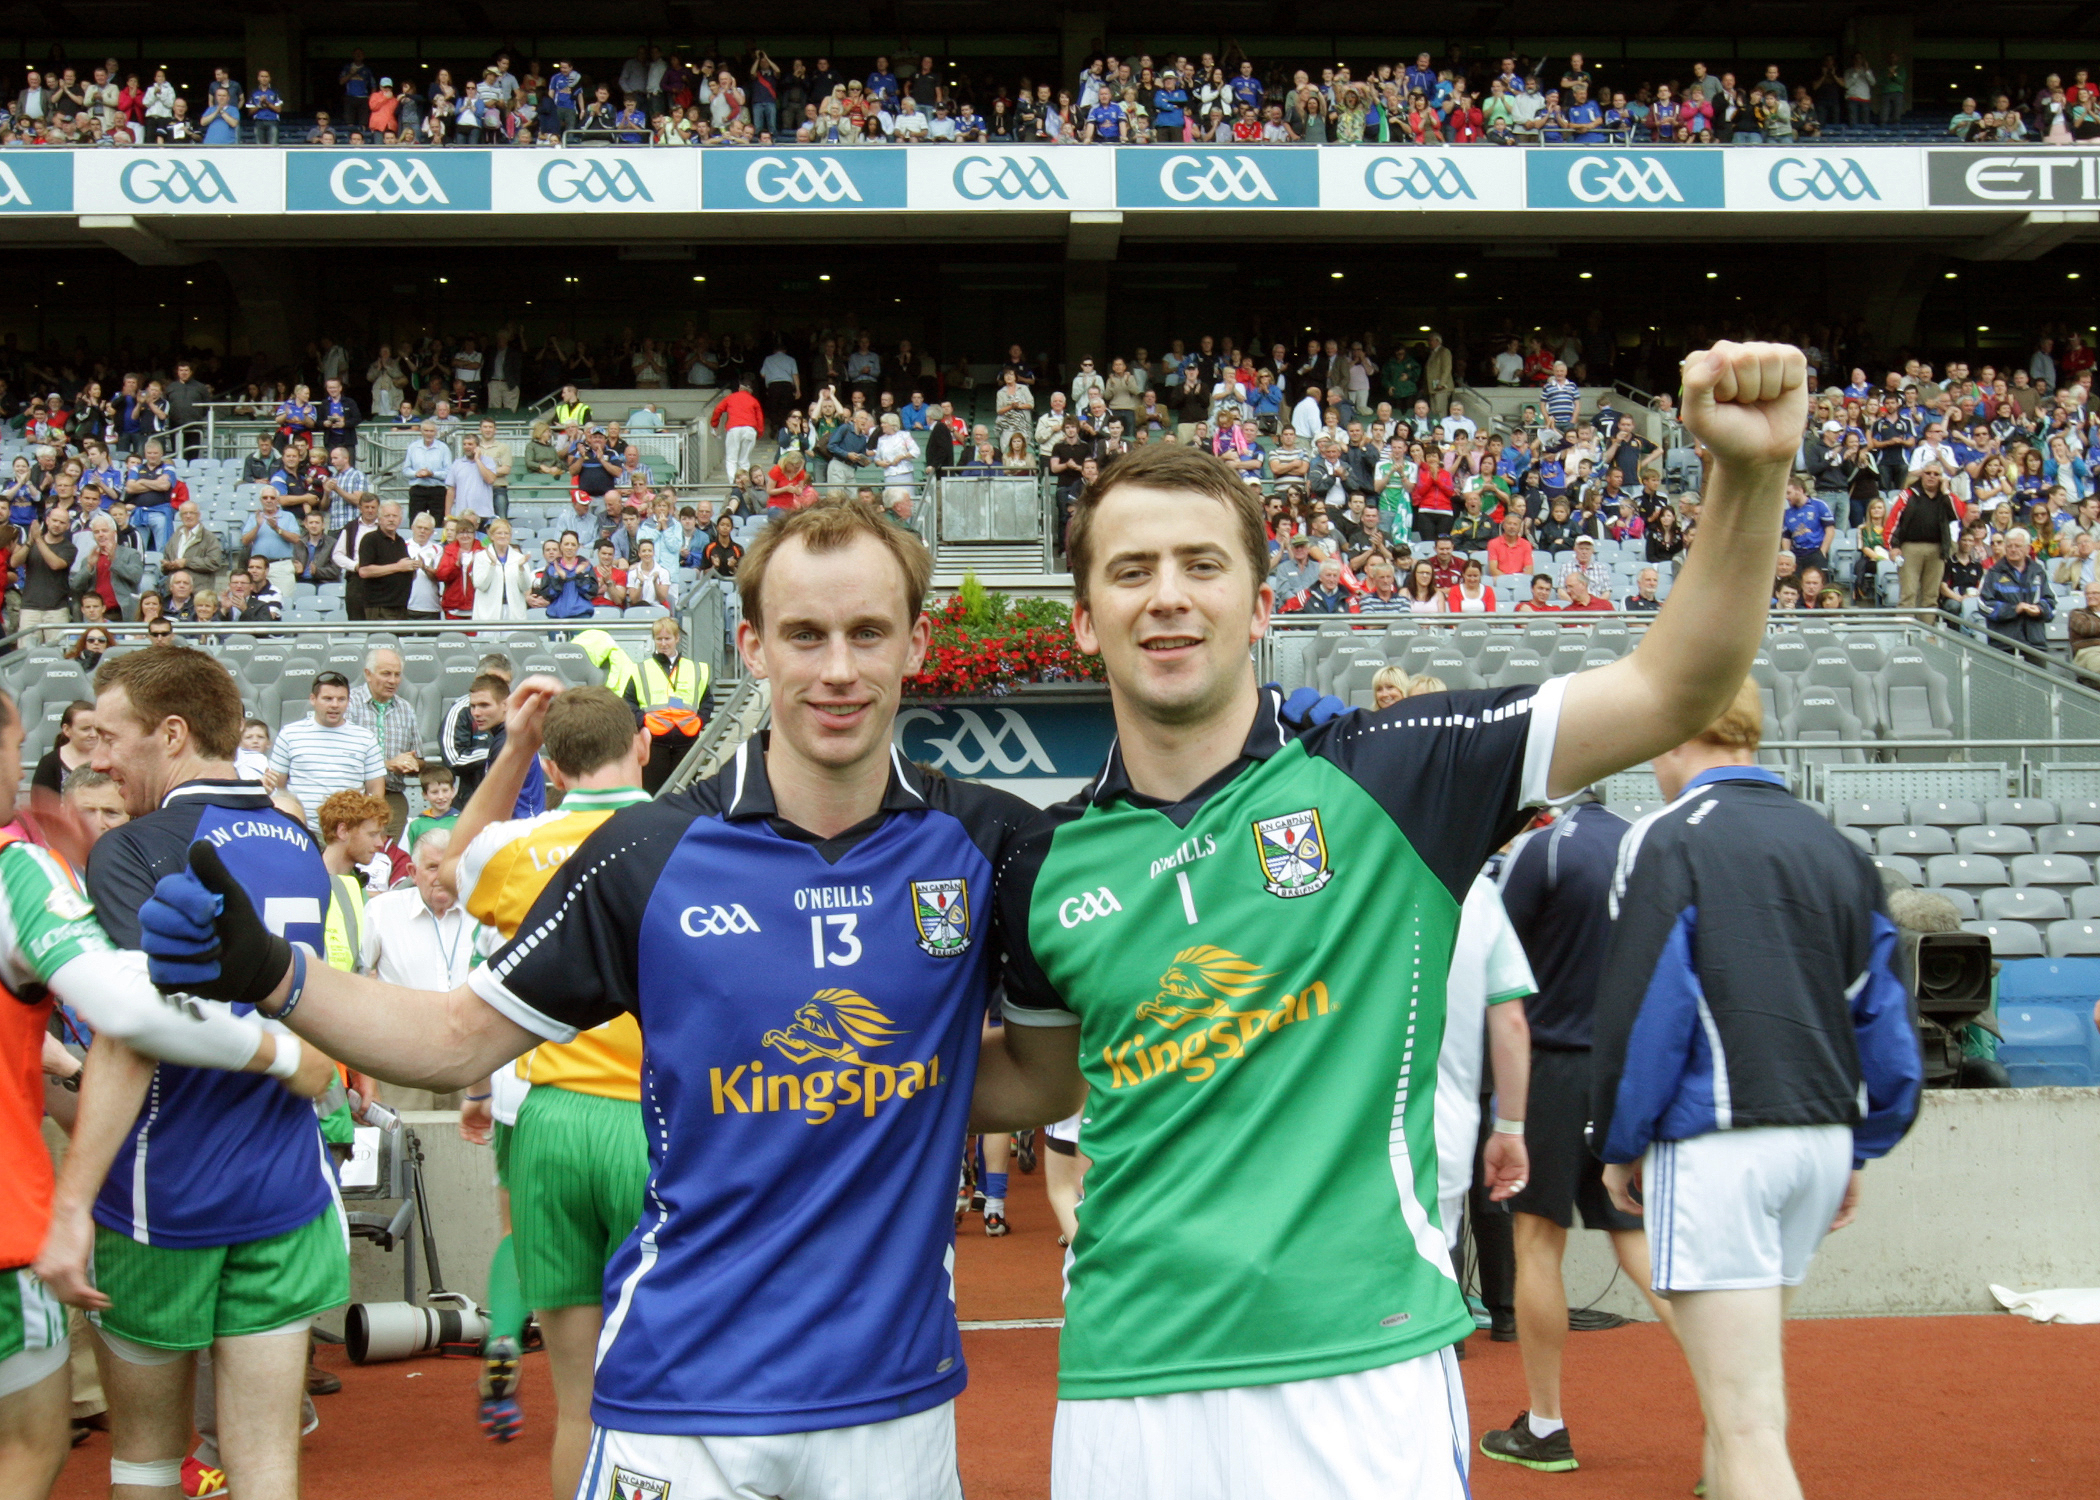 Martin Reilly and Alan O'Mara celebrate Cavan's historic win in Croke Park where both made a major contribution to the game. Photo: Adrian Donohoe.